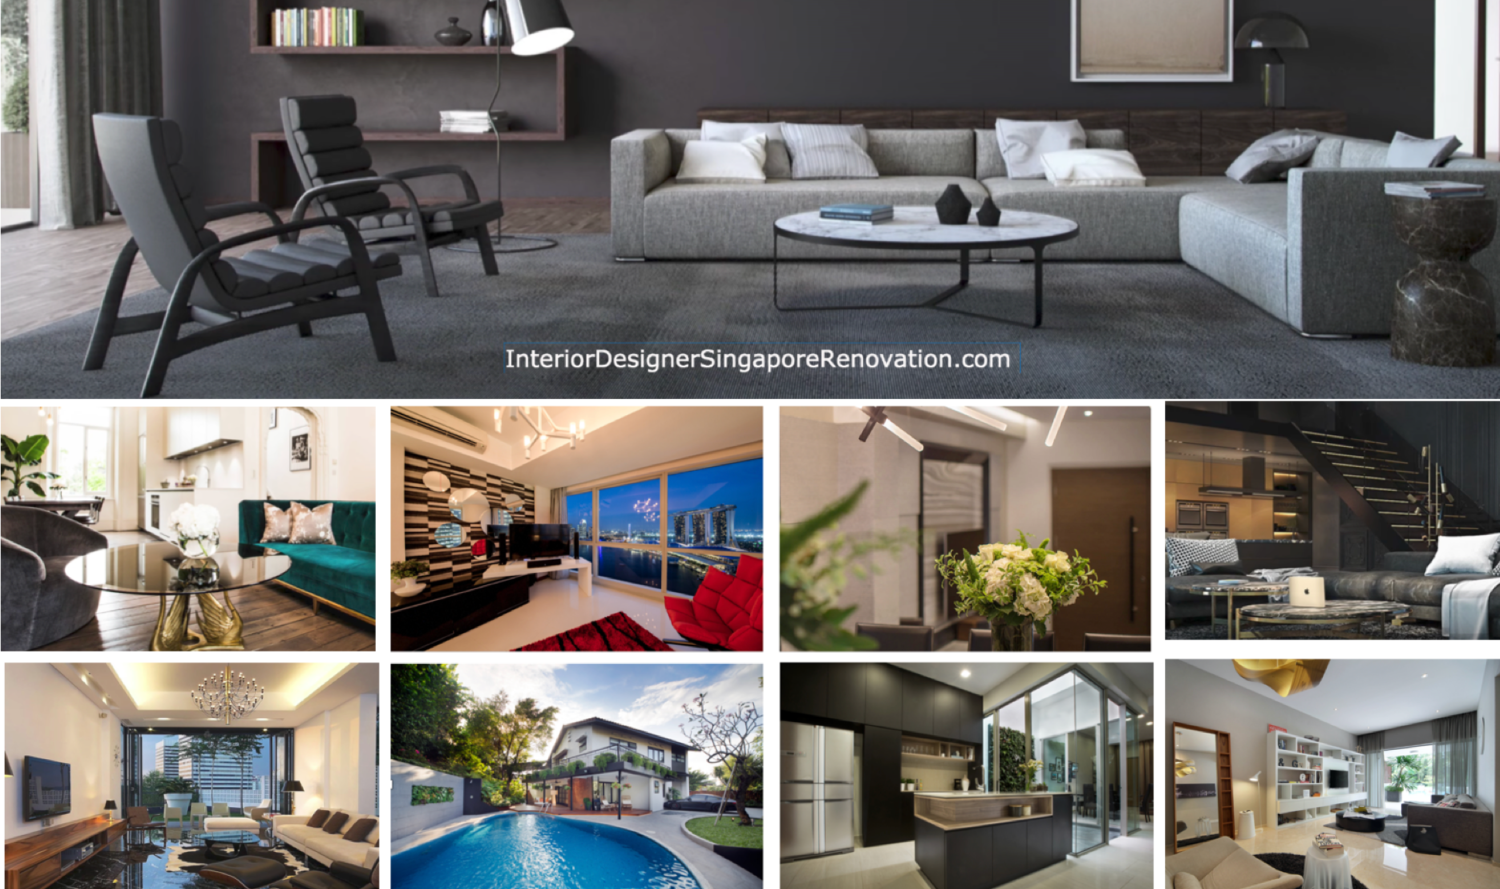 Top best interior designers in singapore interior design for Architecture firms in singapore